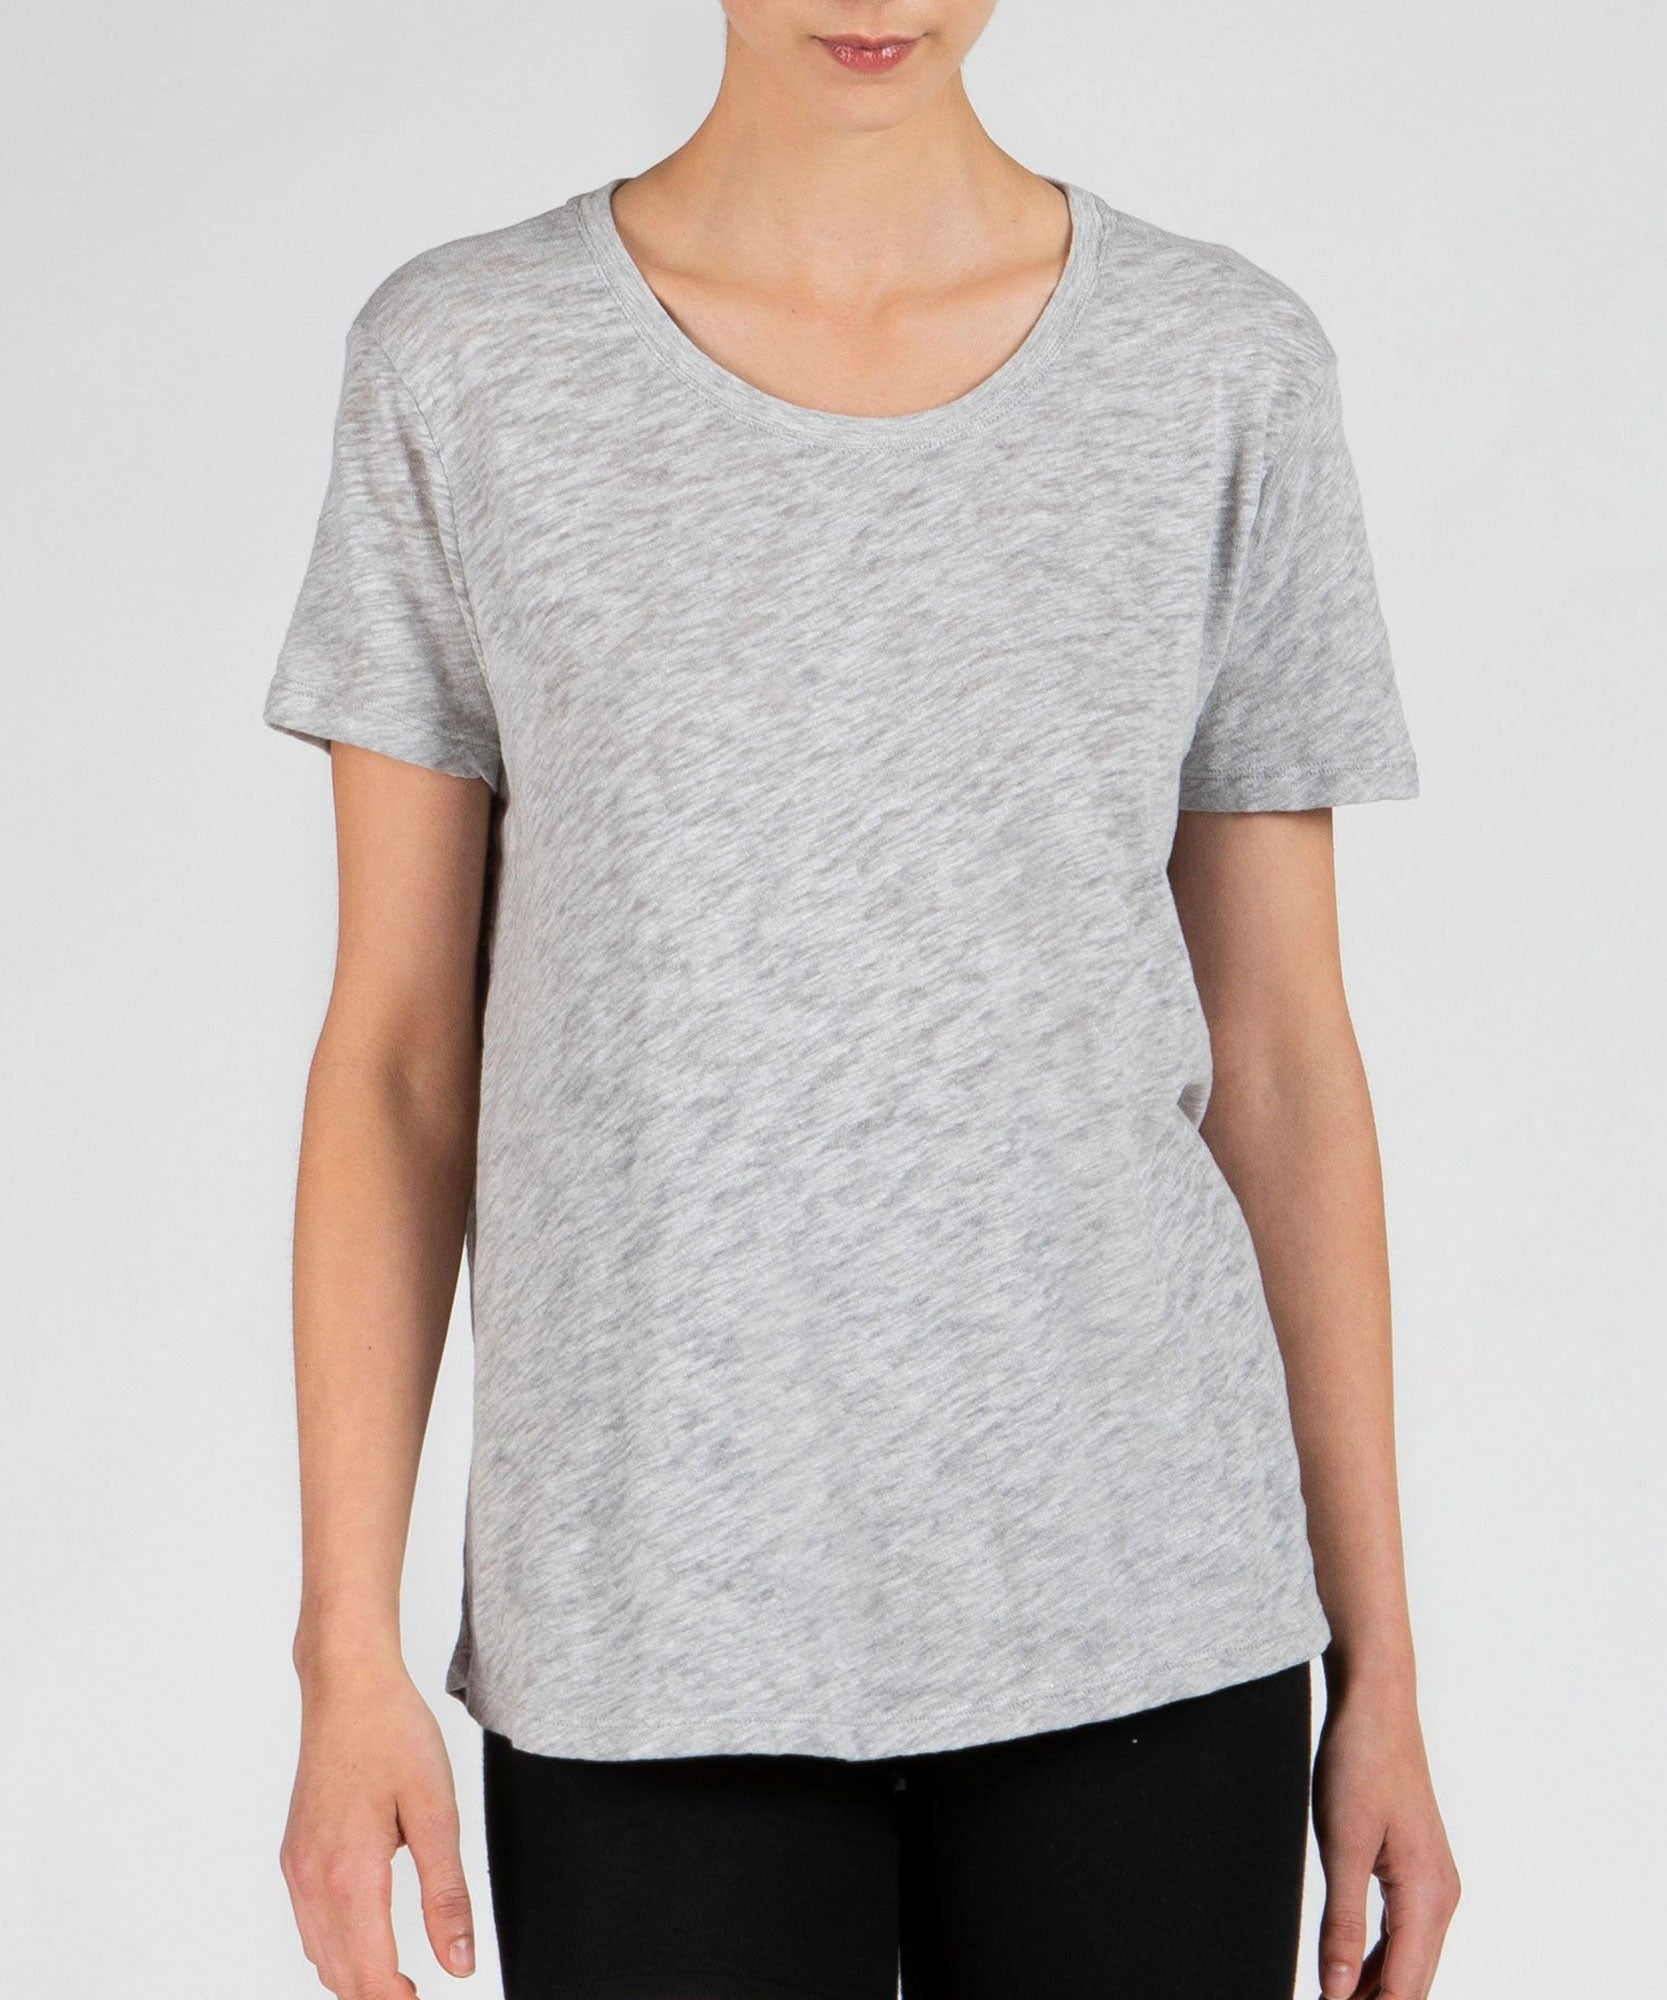 Heather Grey Slub Jersey Boyfriend Crew Neck Tee - Women's Cotton Short Sleeve Tee by ATM Anthony Thomas Melillo